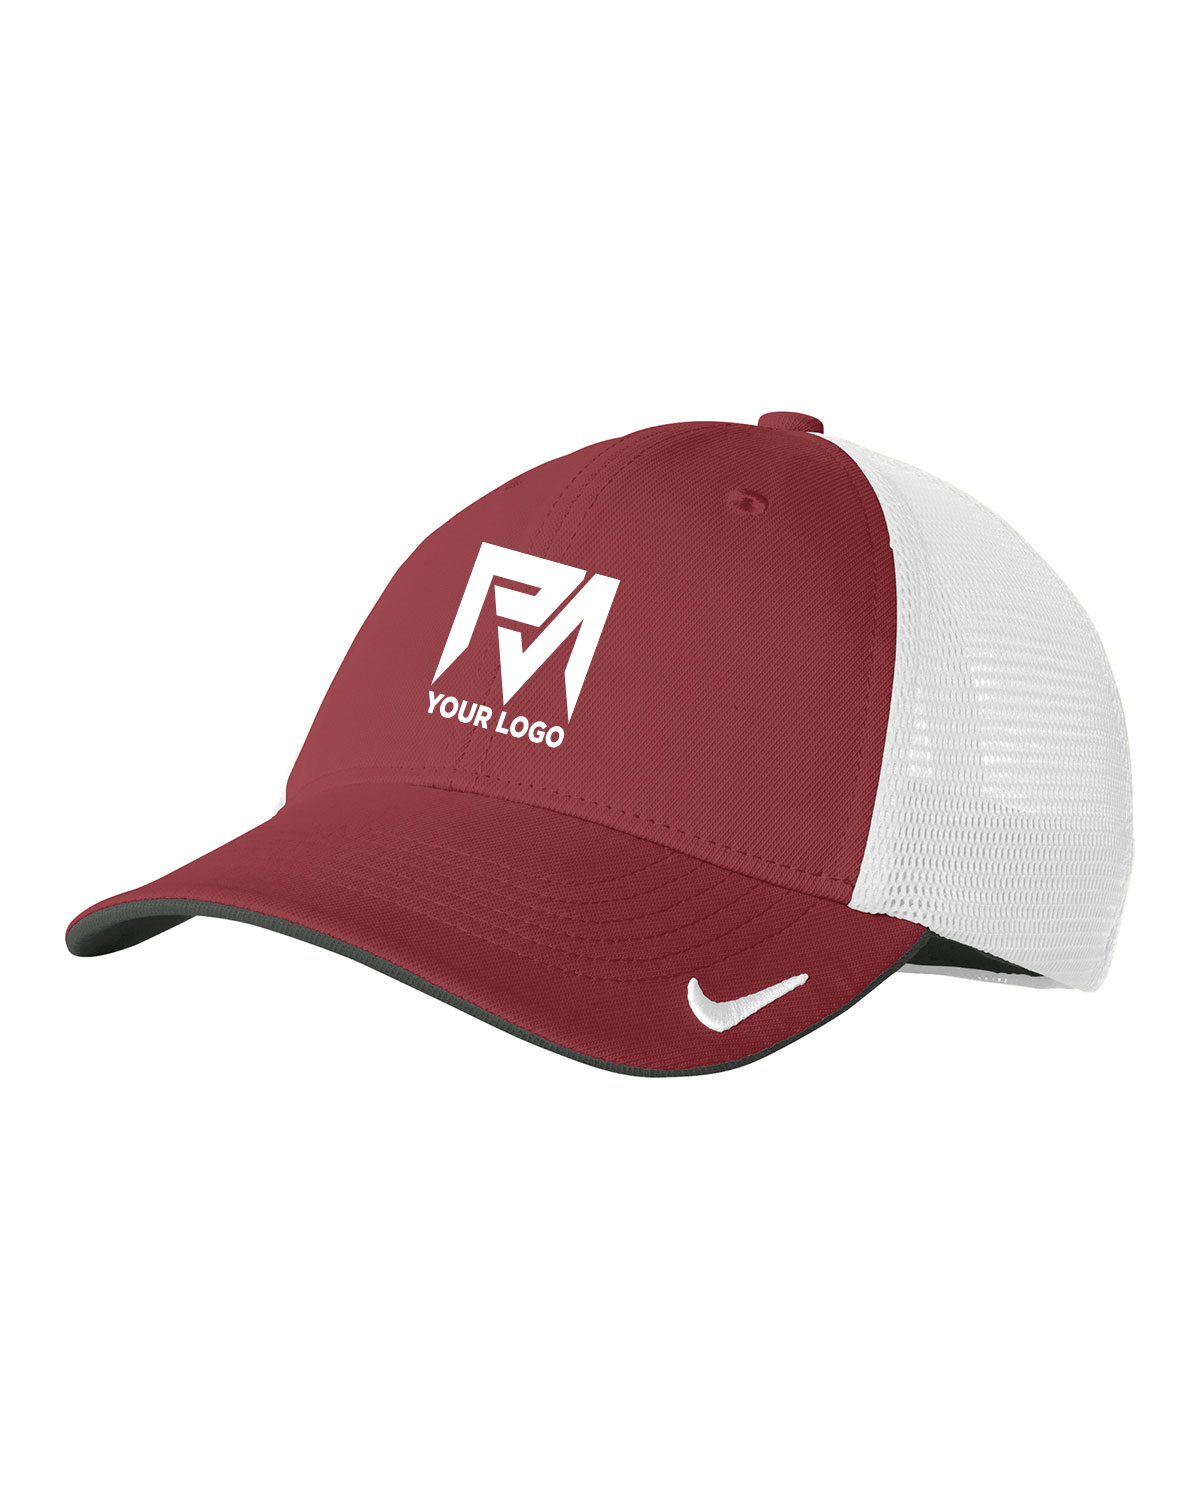 Nike Golf NKAO9293 Dri-FIT Mesh Back Cap